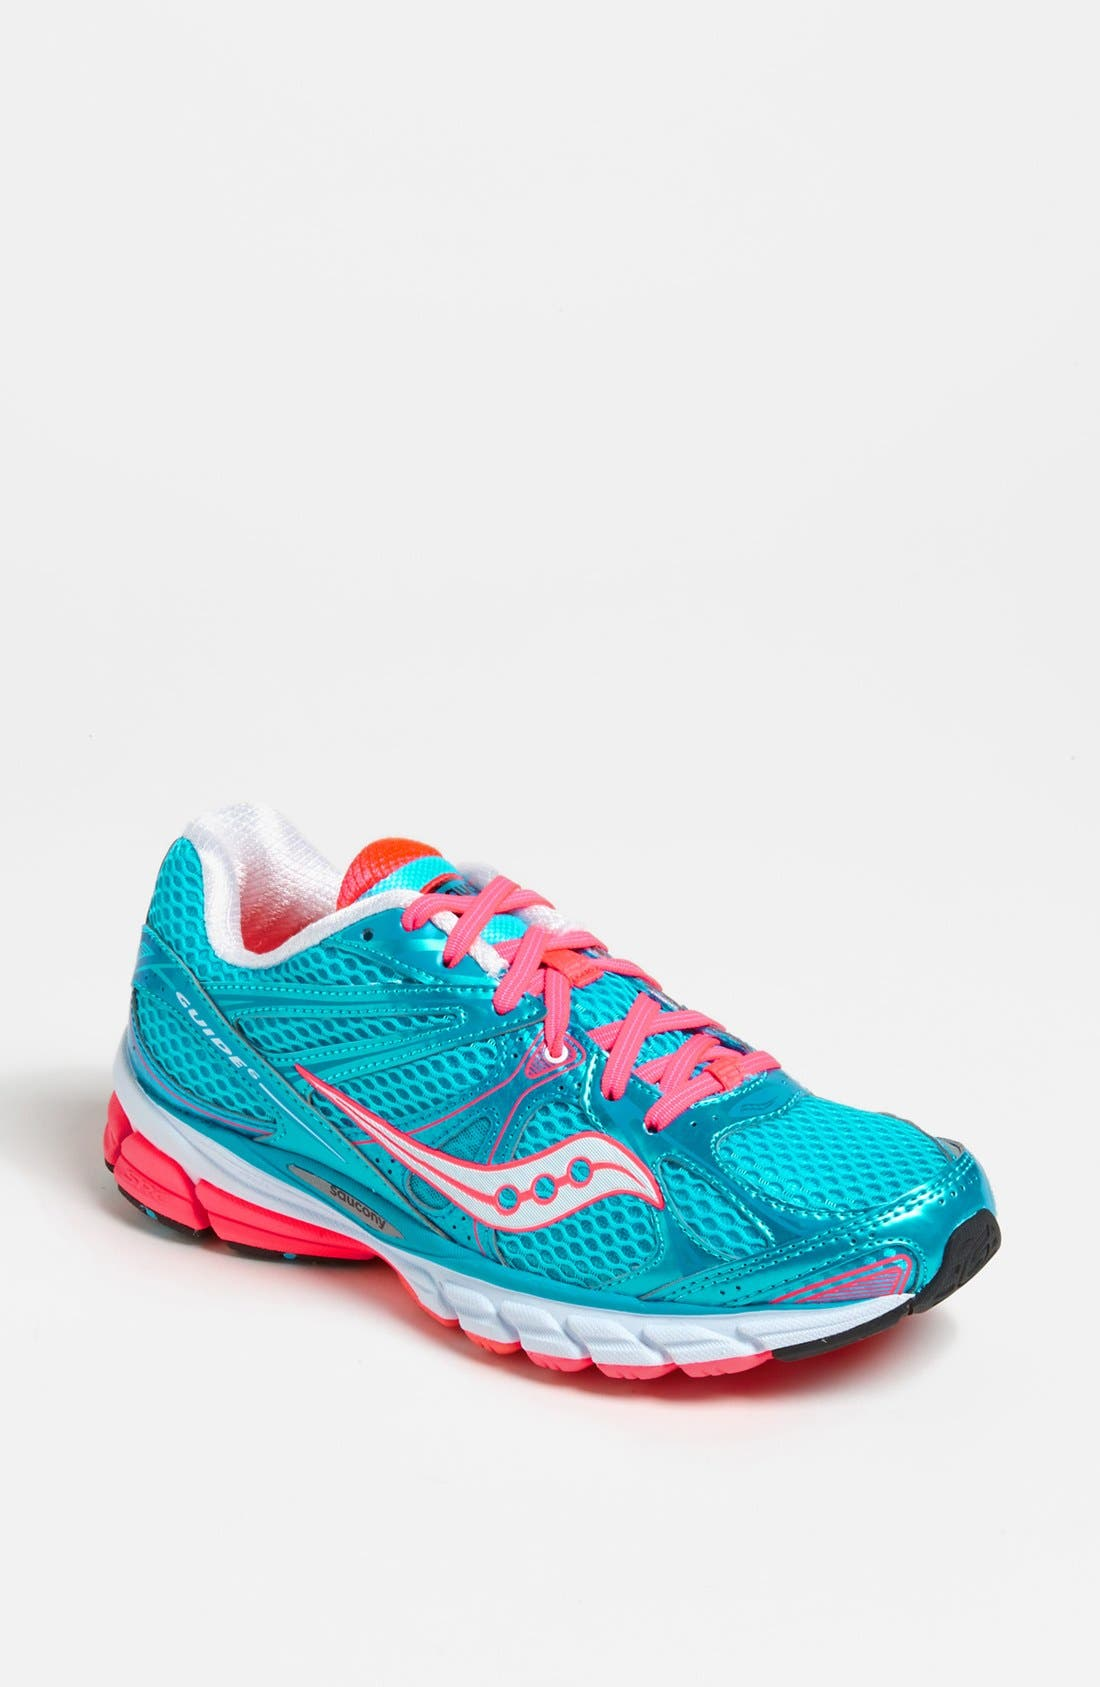 Alternate Image 1 Selected - SAUCONY GUIDE 6 RUNNING SHOE